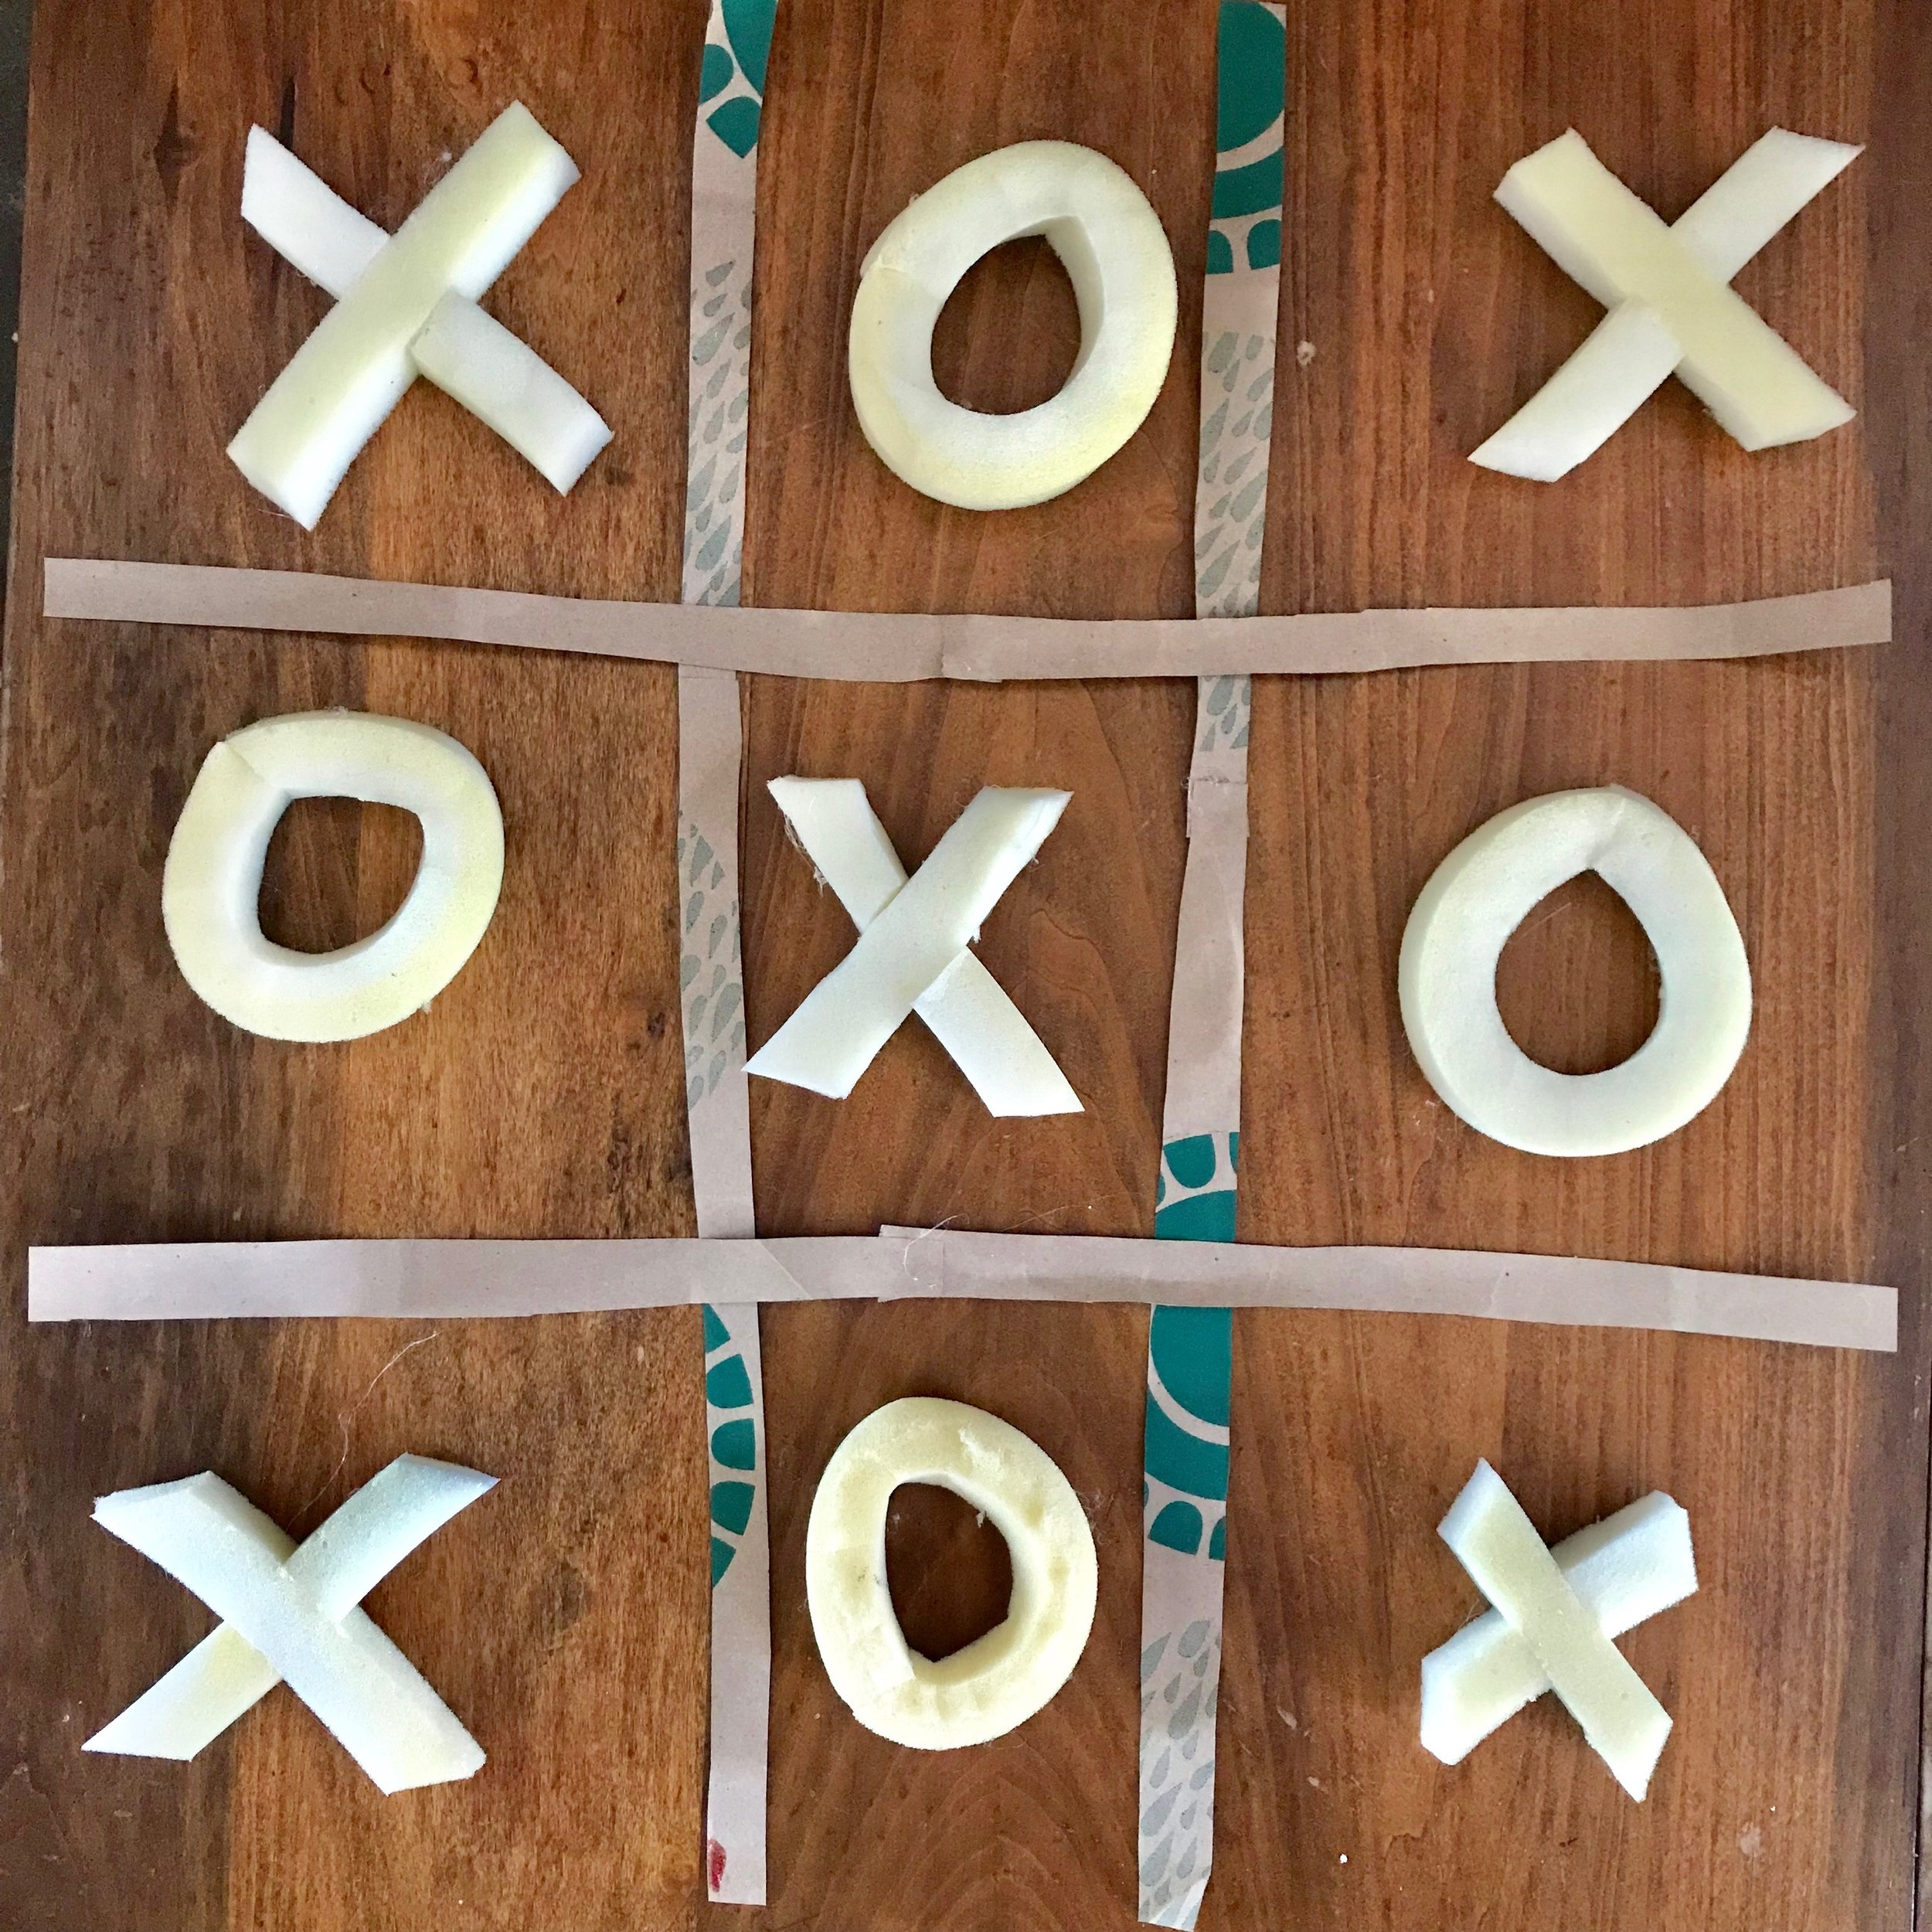 Day 287. Tic-Tac Toe Board